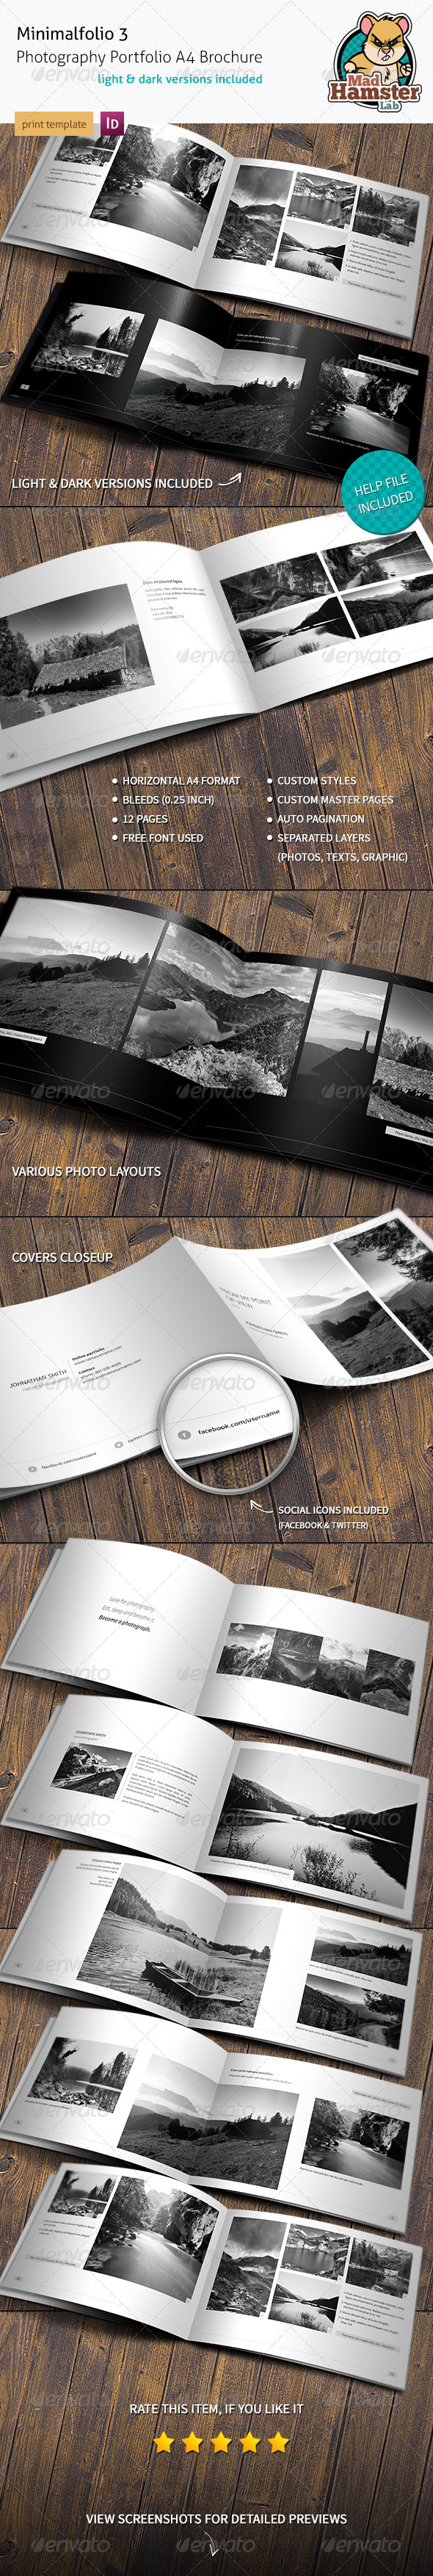 GraphicRiver Minimalfolio 3 Photography Portfolio A4 Brochure 3701359